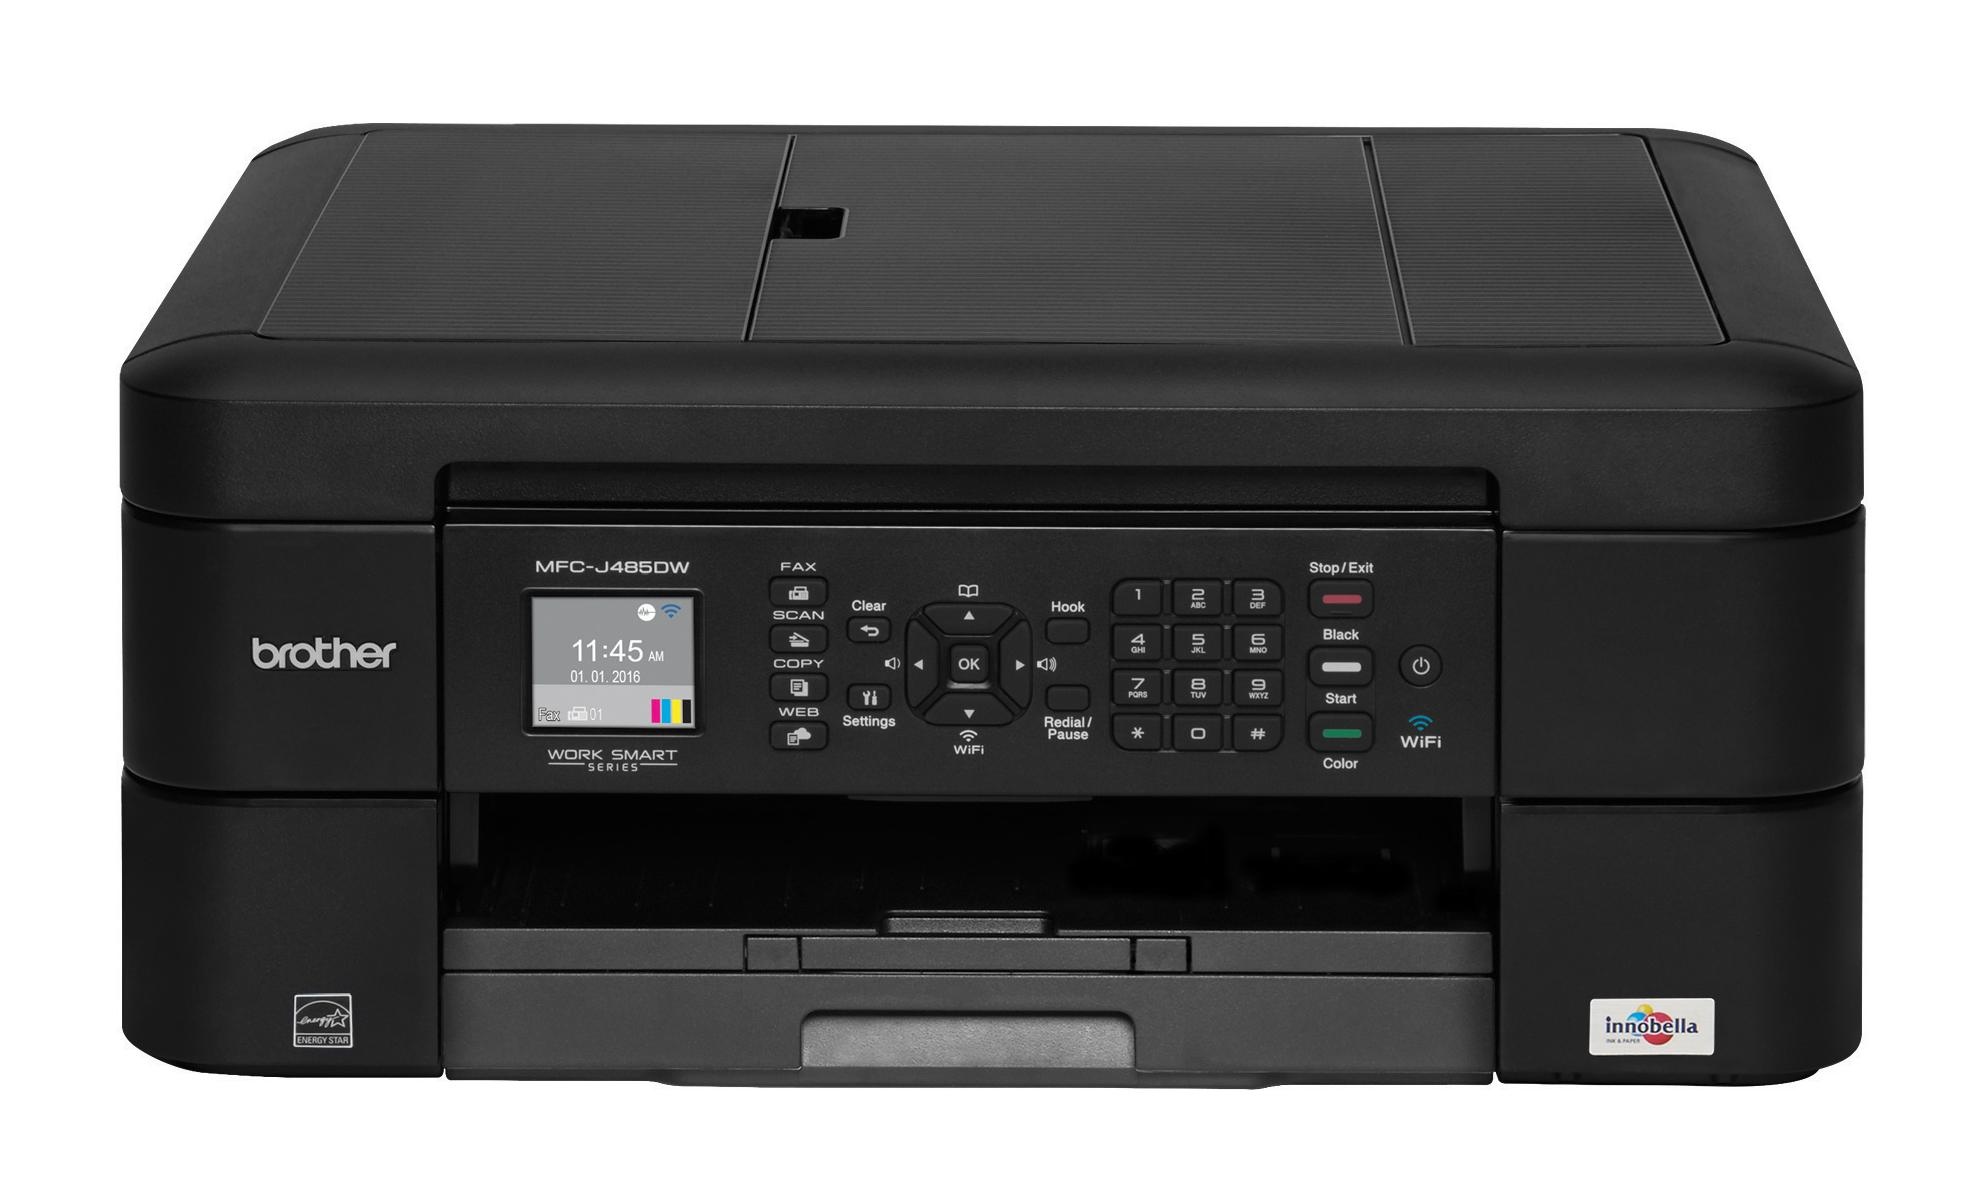 Brother MFC-J480DW MFP A4 color USB inkjet 12ppm print scan copy fax WLAN